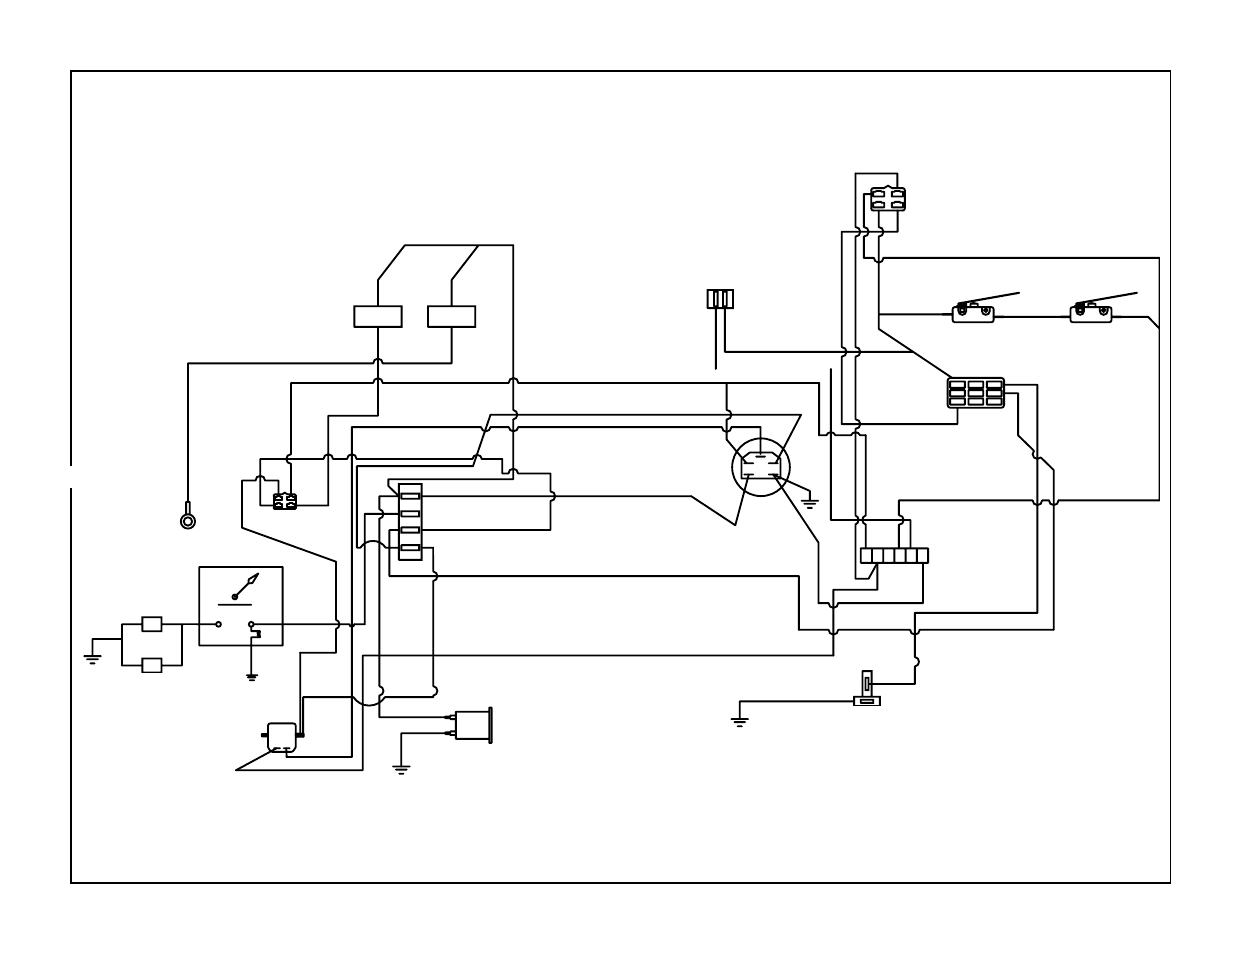 Bush Hog Schematics | Wiring Diagram Bush Hog Wiring Diagram on volvo wiring diagram, kawasaki wiring diagram, international wiring diagram, lawn boy wiring diagram, kubota wiring diagram, vermeer wiring diagram, simplicity wiring diagram, yamaha wiring diagram, mtd wiring diagram, orthman wiring diagram, land pride wiring diagram, big dog wiring diagram, agco allis wiring diagram, ferris wiring diagram, echo wiring diagram, power king wiring diagram, country clipper wiring diagram, kodiak wiring diagram, ditch witch wiring diagram, tecumseh wiring diagram,